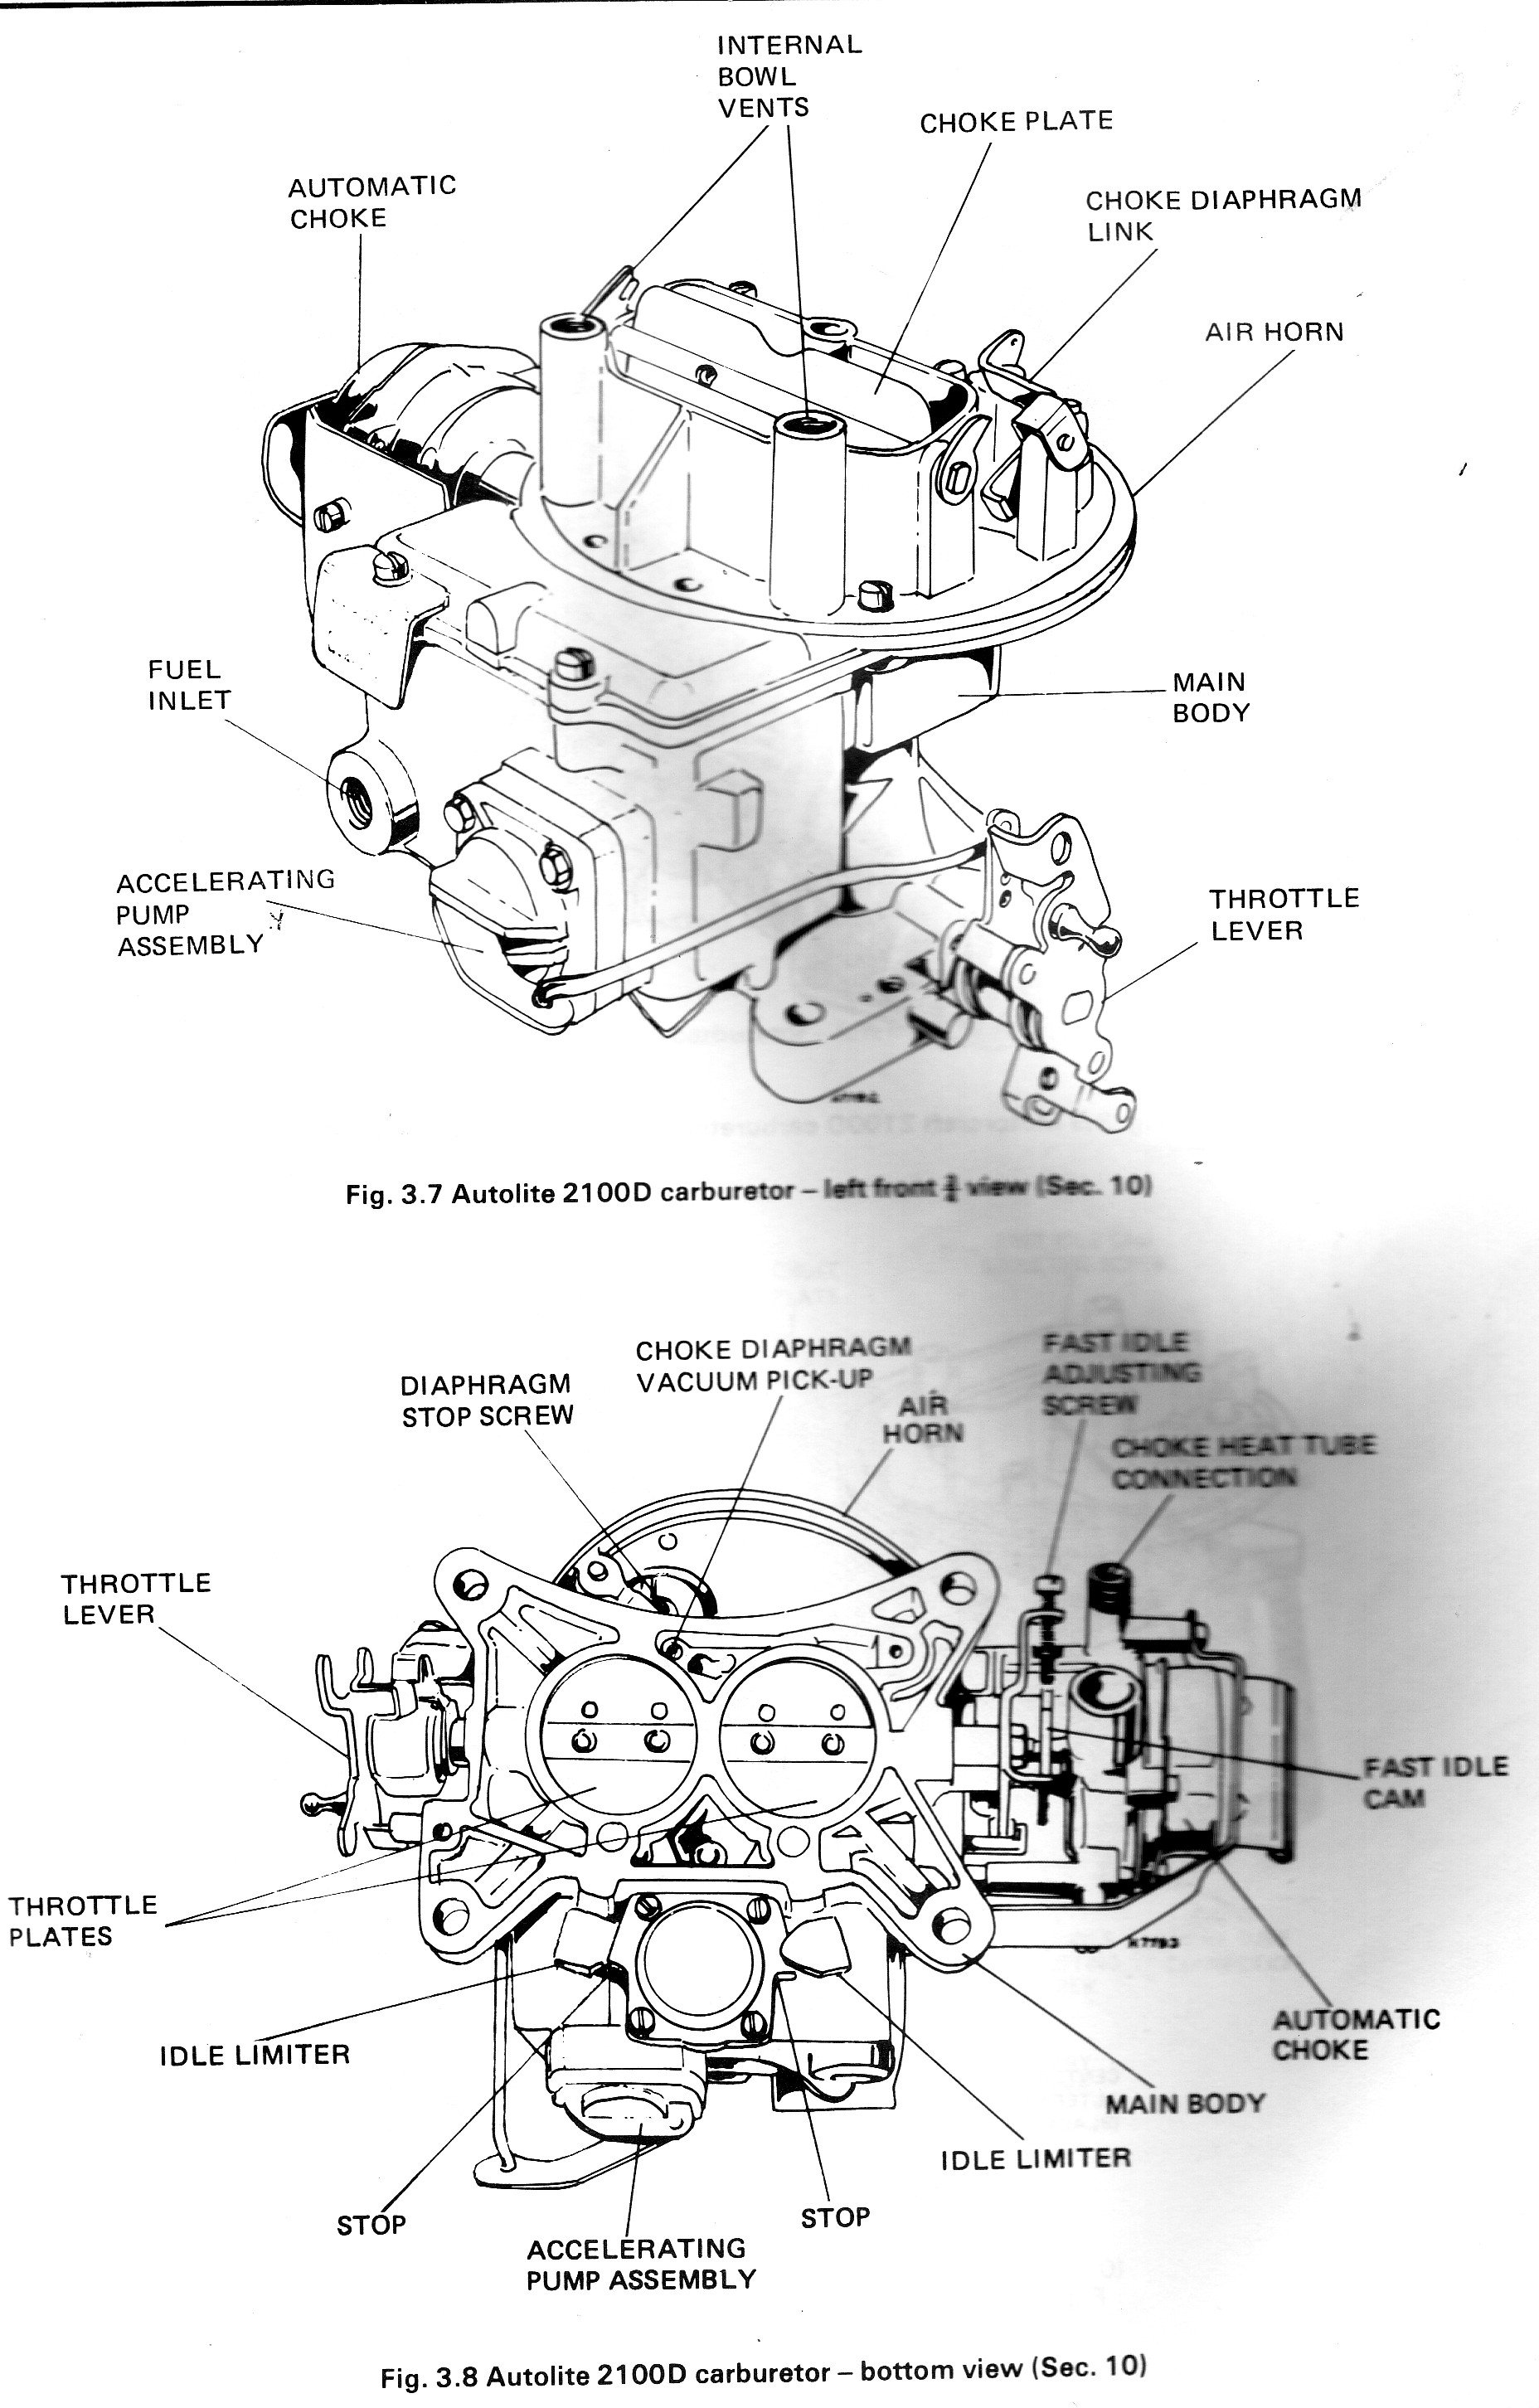 63153d1236399041 2100 carb diagram motorcraft 3 2100 carb diagram page 2 ford mustang forum Motorcraft 2150 Carburetor Identification at bayanpartner.co